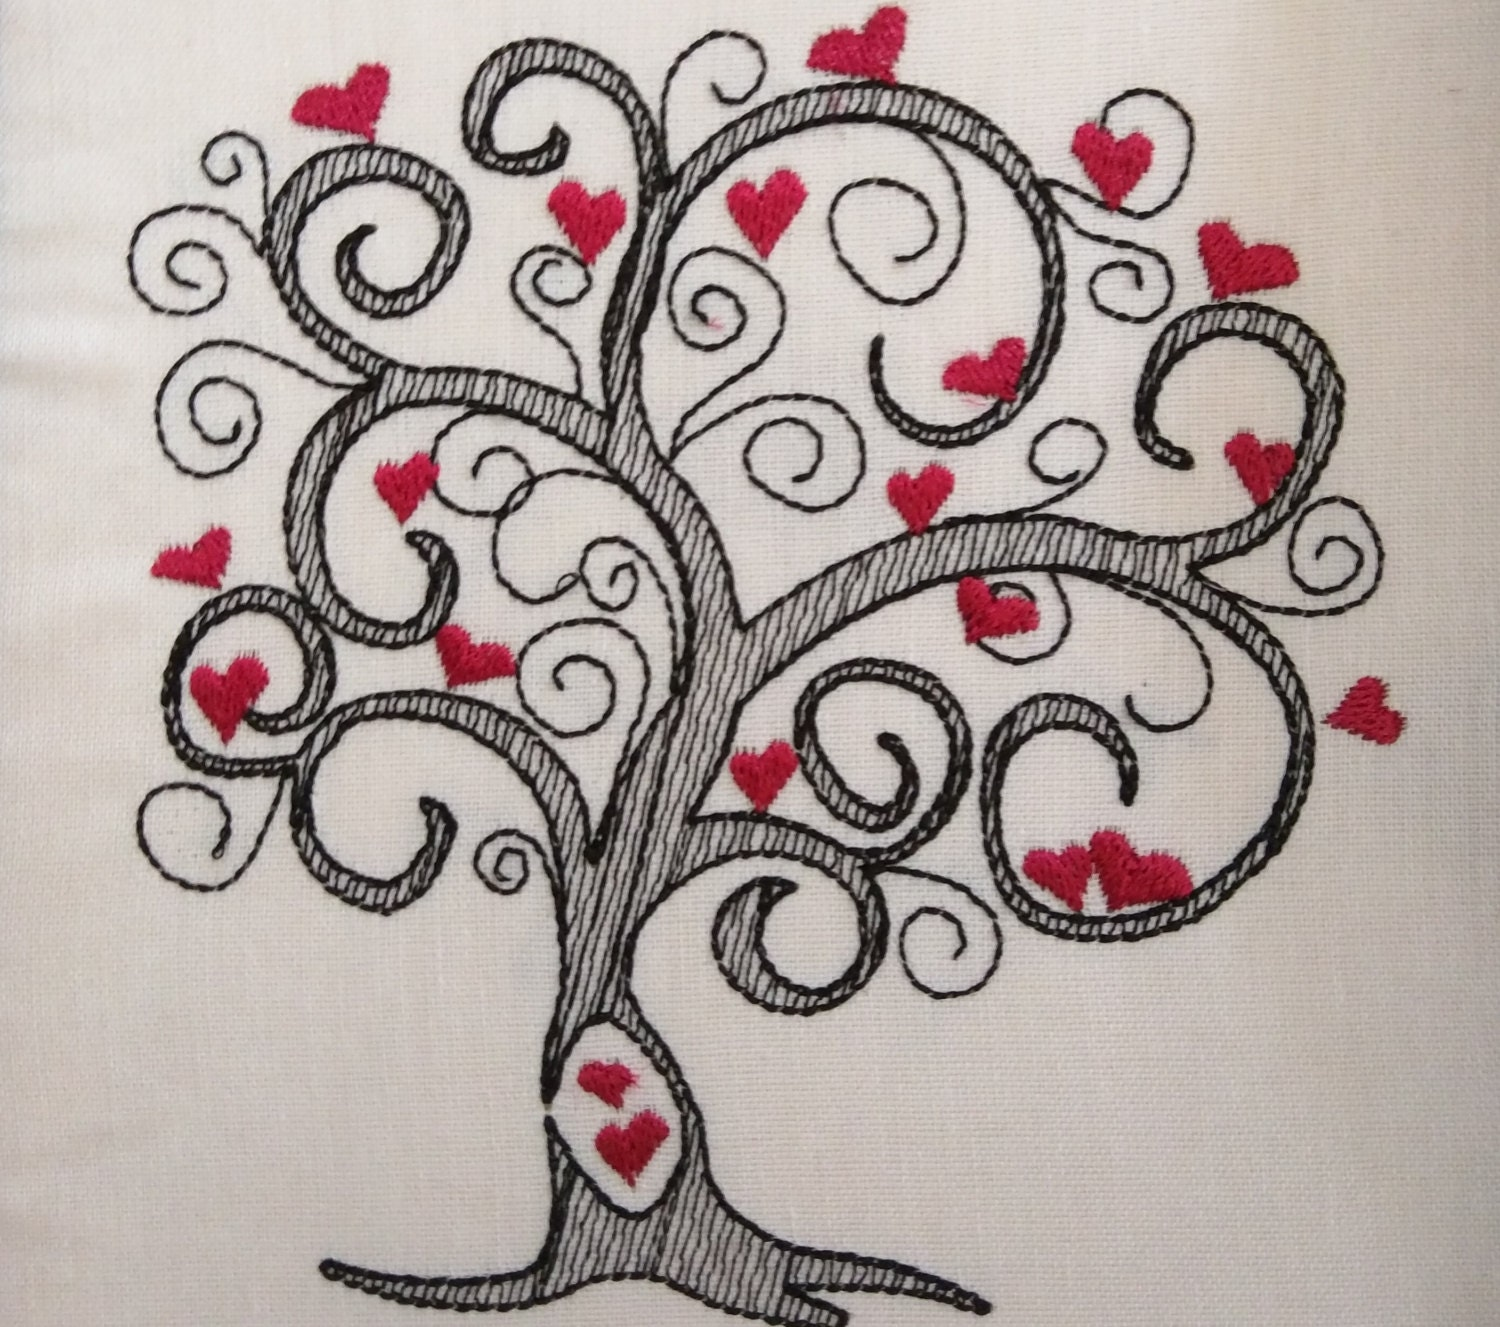 Love tree sketch stitch embroidery designs 4x4 5x7 6x10